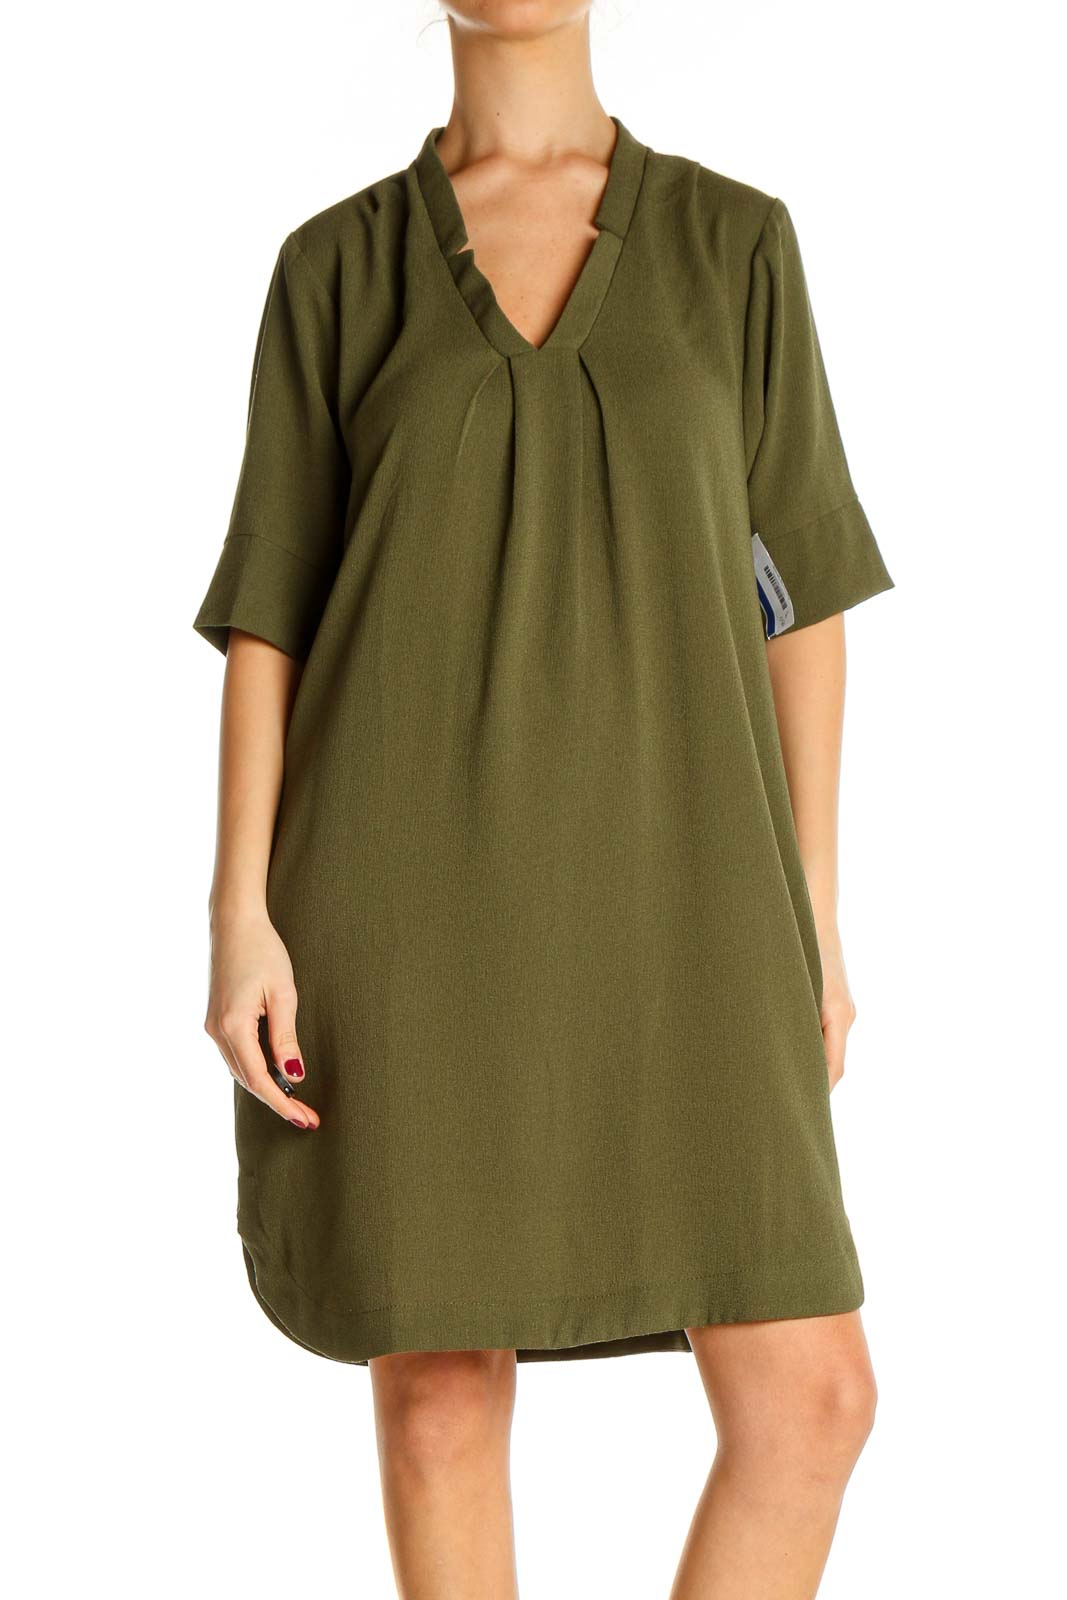 Green Solid Classic A-Line Dress Front